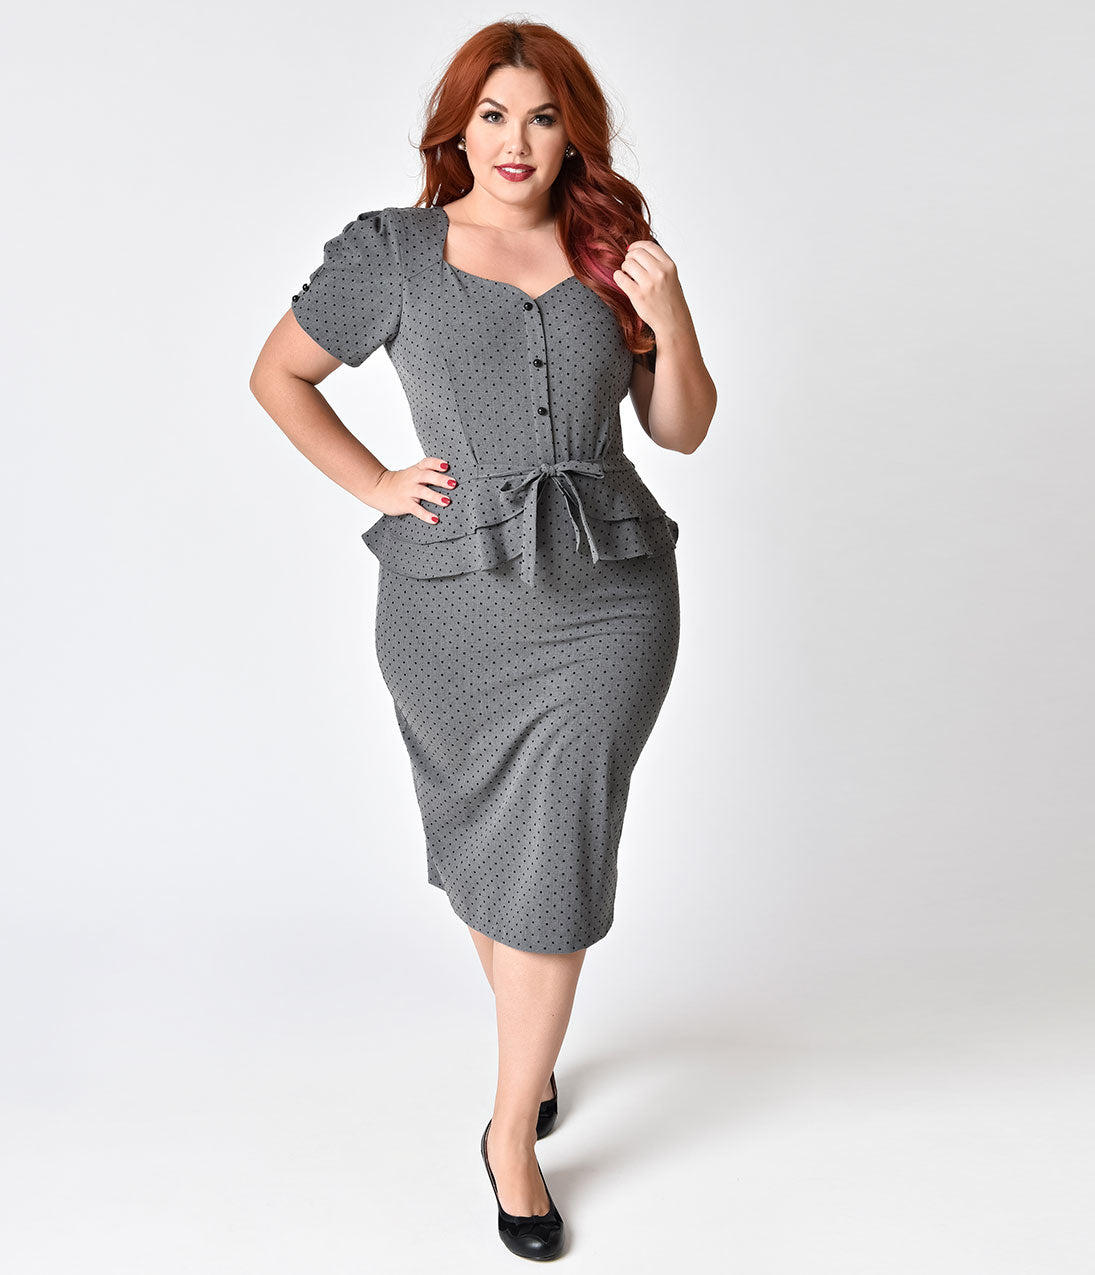 Plus Size 1940s Dress | Best Dresses 2019